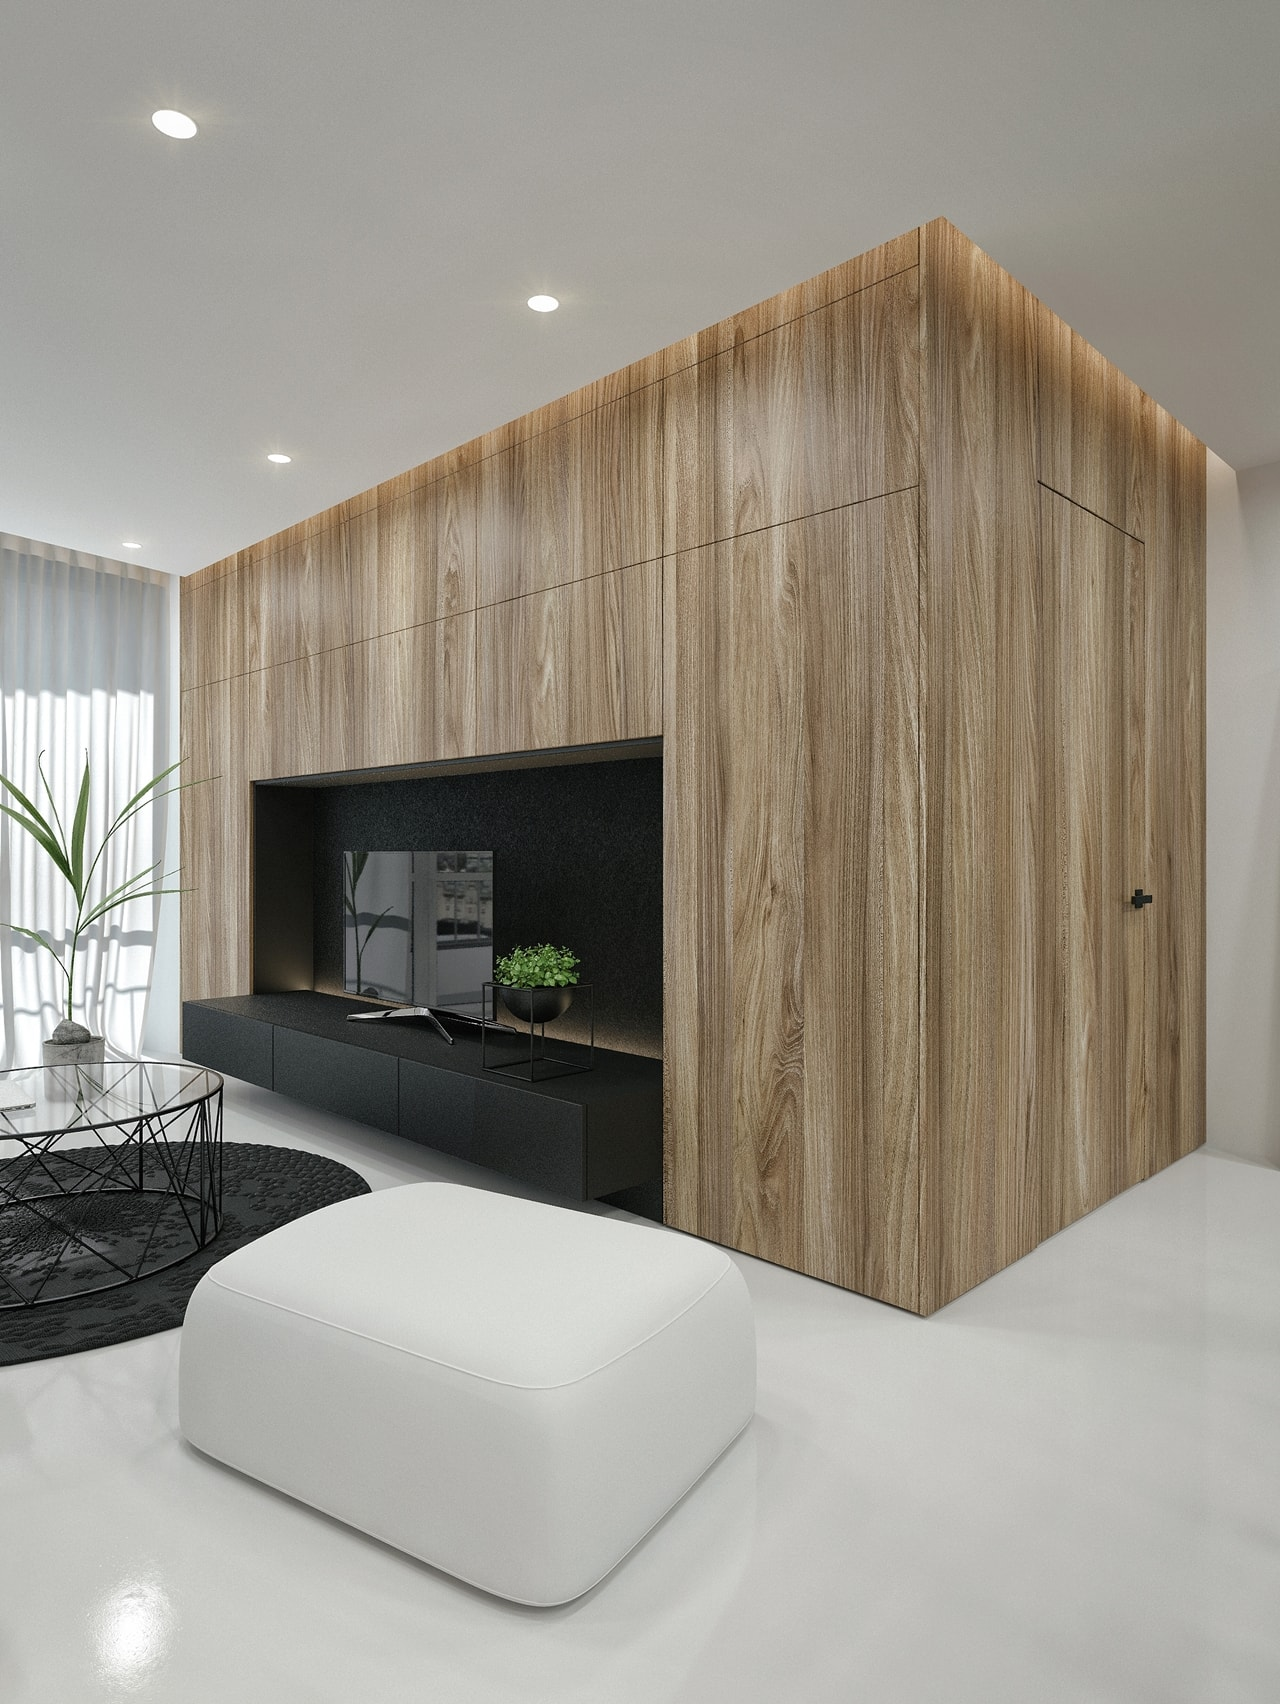 Wood texture in modern living room design by ID White